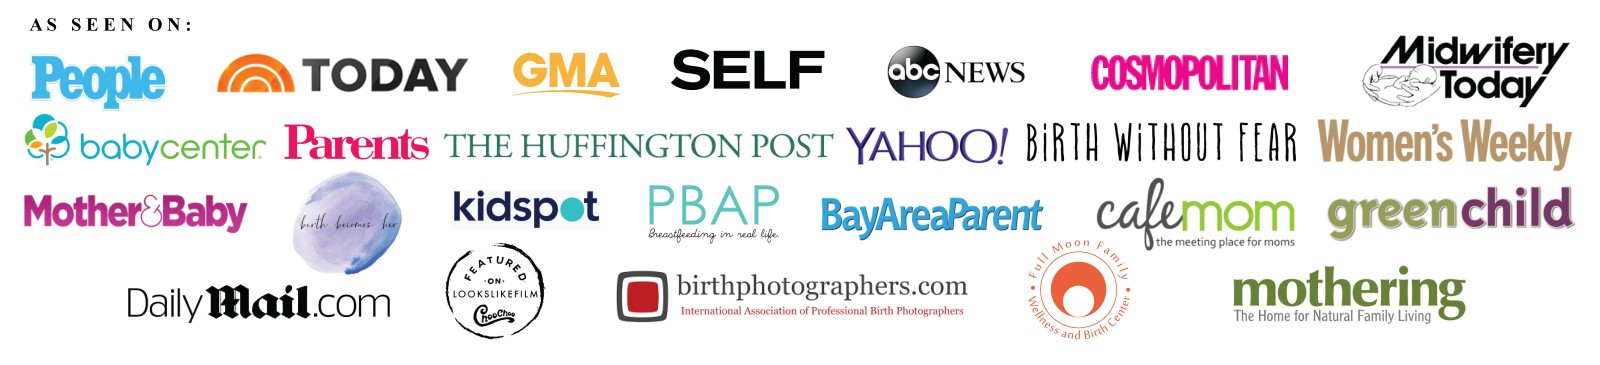 santa-cruz-birth-photography-and-doula-services-as-seen-on-20172-resized-image-1600x365.jpg